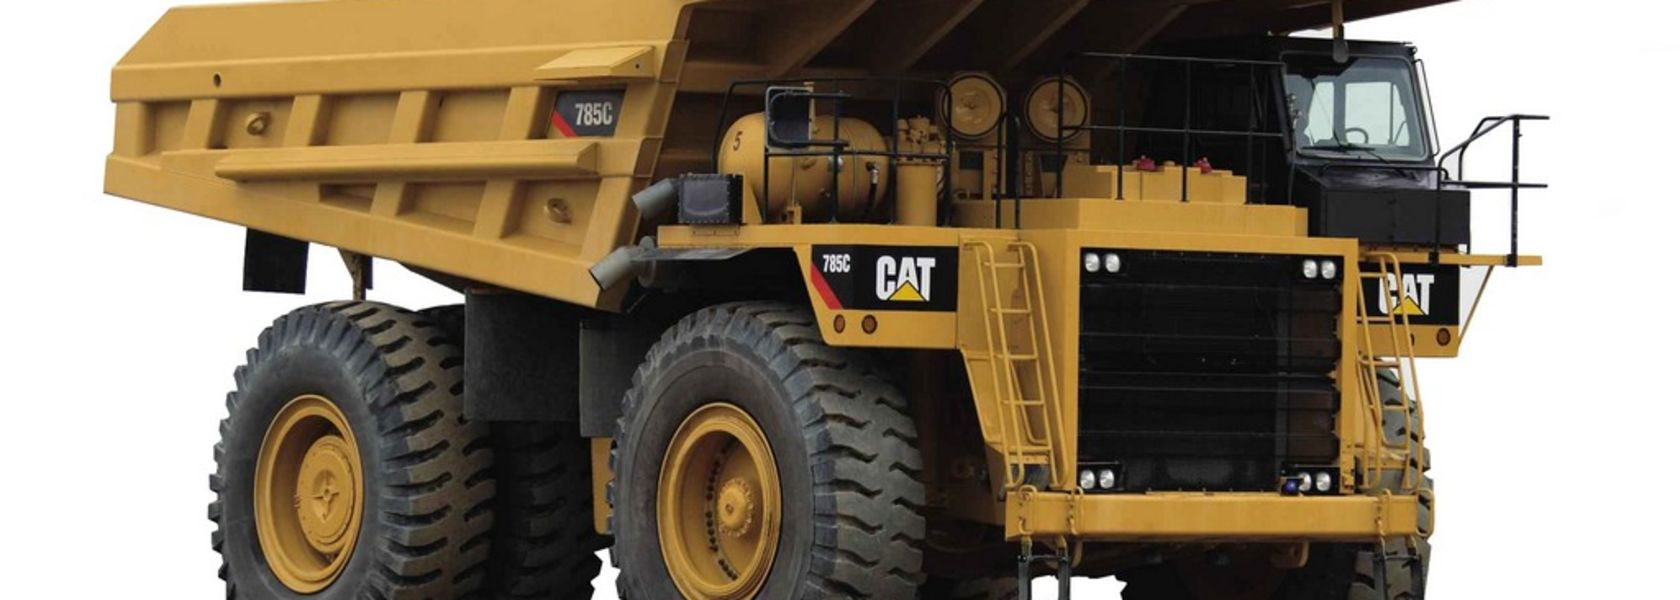 Dual fuel retrofit kit for Cat 785C